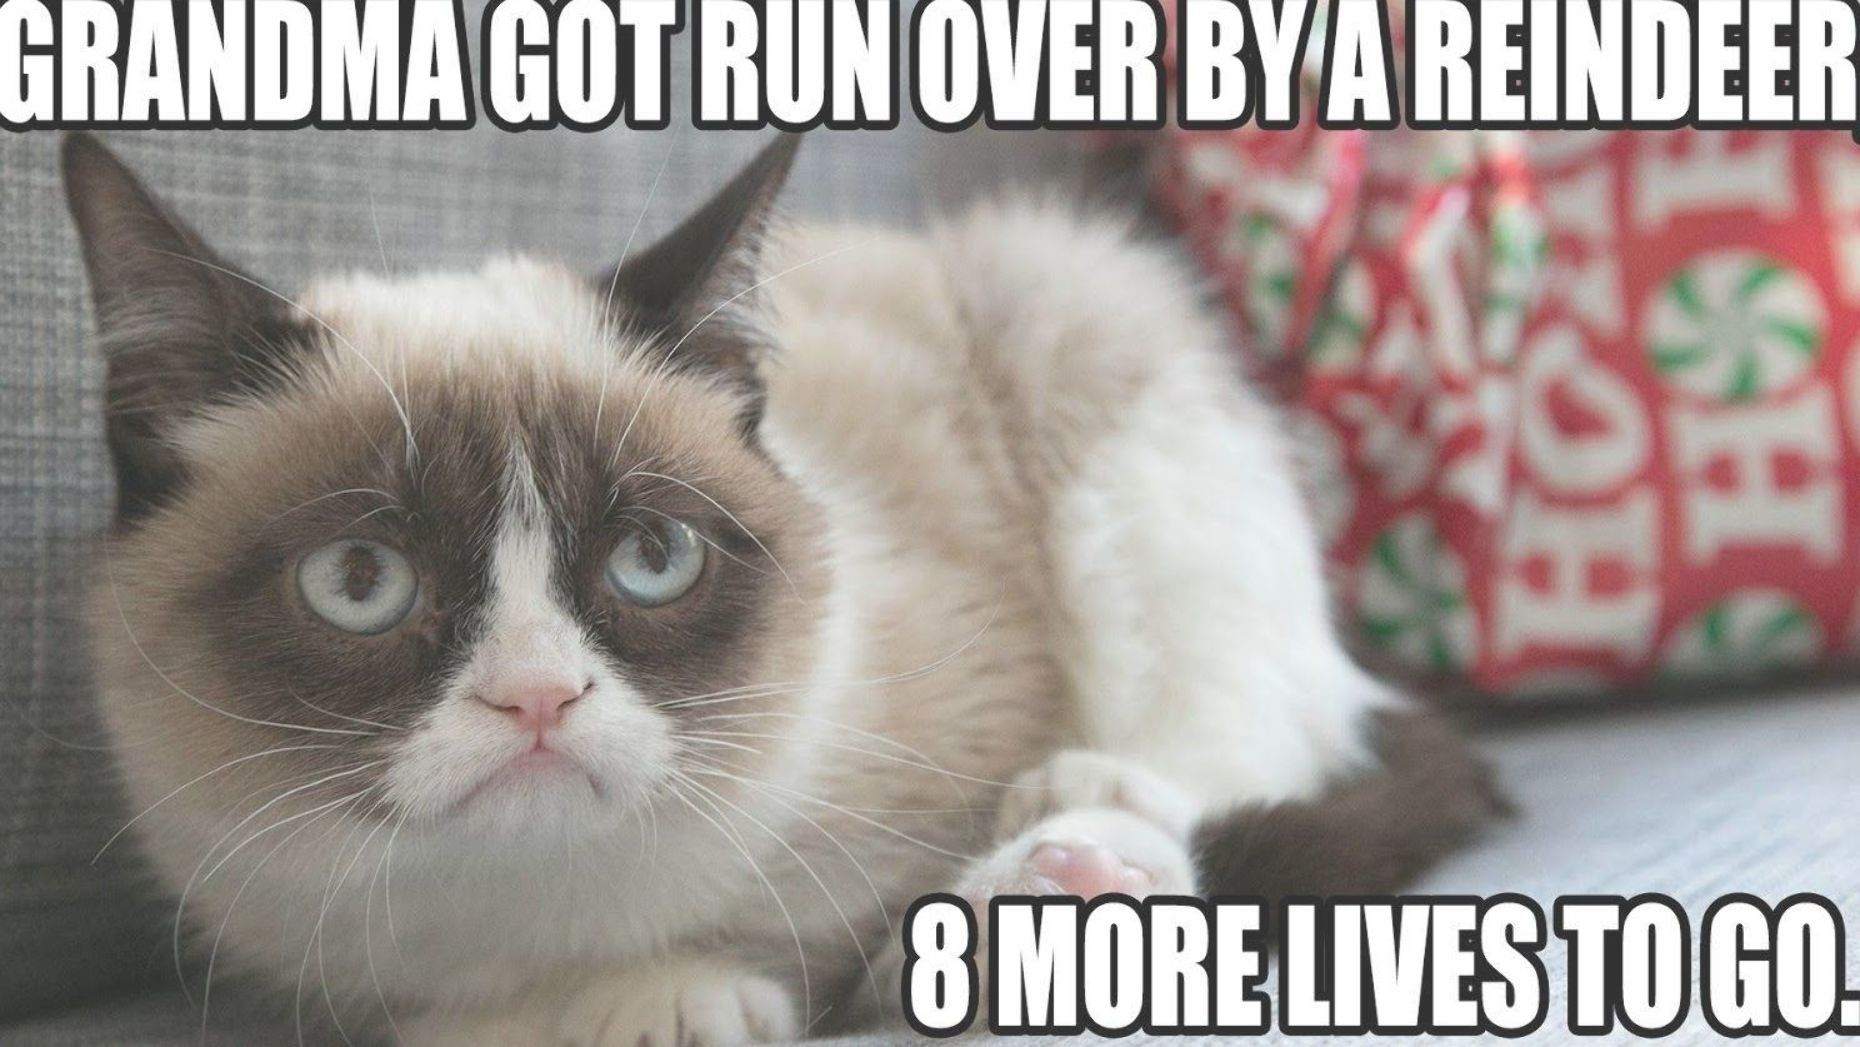 The Collection Of Today Are Especially For You And Grumpy Cat Grumpy Cat Memes Twinkle Twinkle Are Grumpy Cat Christmas Funny Grumpy Cat Memes Grumpy Cat Meme